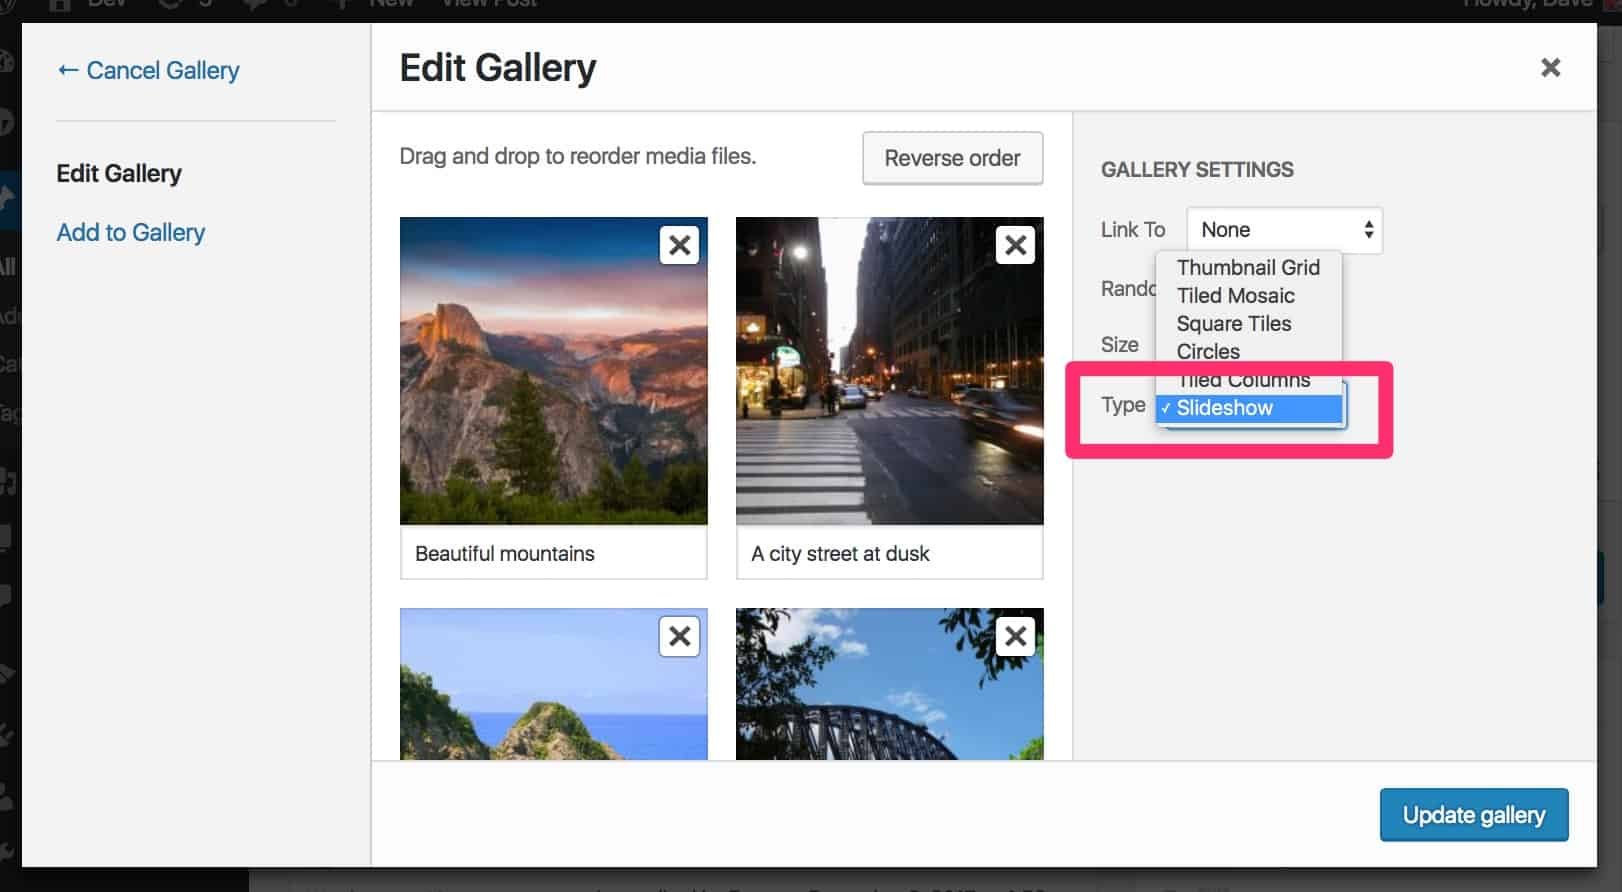 How to Customize the Jetpack Slideshow Image Gallery with CSS